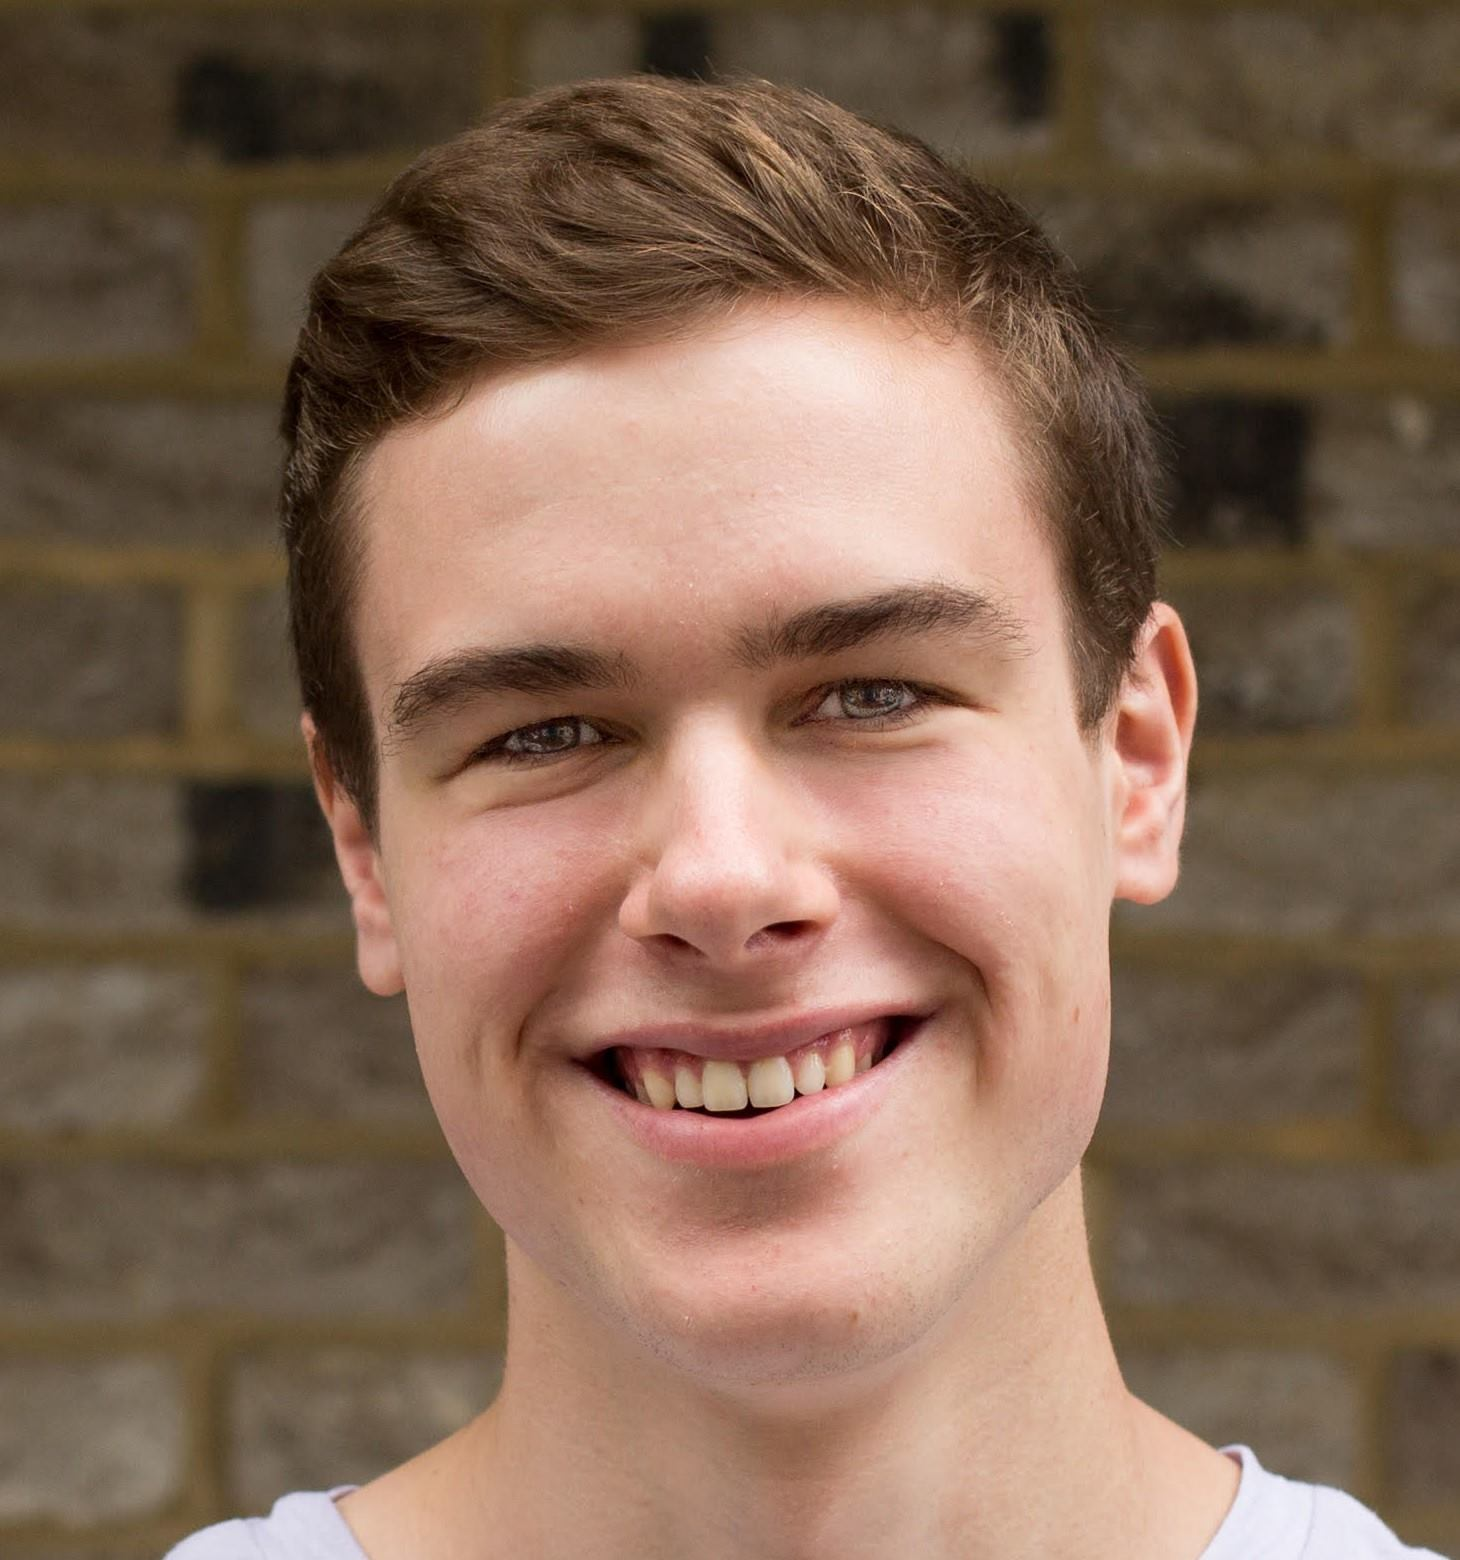 I'm Adrian, a third-year undergraduate at Exeter studying Ancient and Modern History. I have been involved with the Forum on and off for over a year, as a Speaker Seeker and Deputy Treasurer. I have helped to organise a few debates, including one on the polarisation of media narratives. I believe the Forum is a really great way to foster cross-party debate and help reduce that sort of political polarisation. Outside of the Forum, I am involved with various other Oxford political societies, avidly read history books and am a die-hard Arsenal fan.